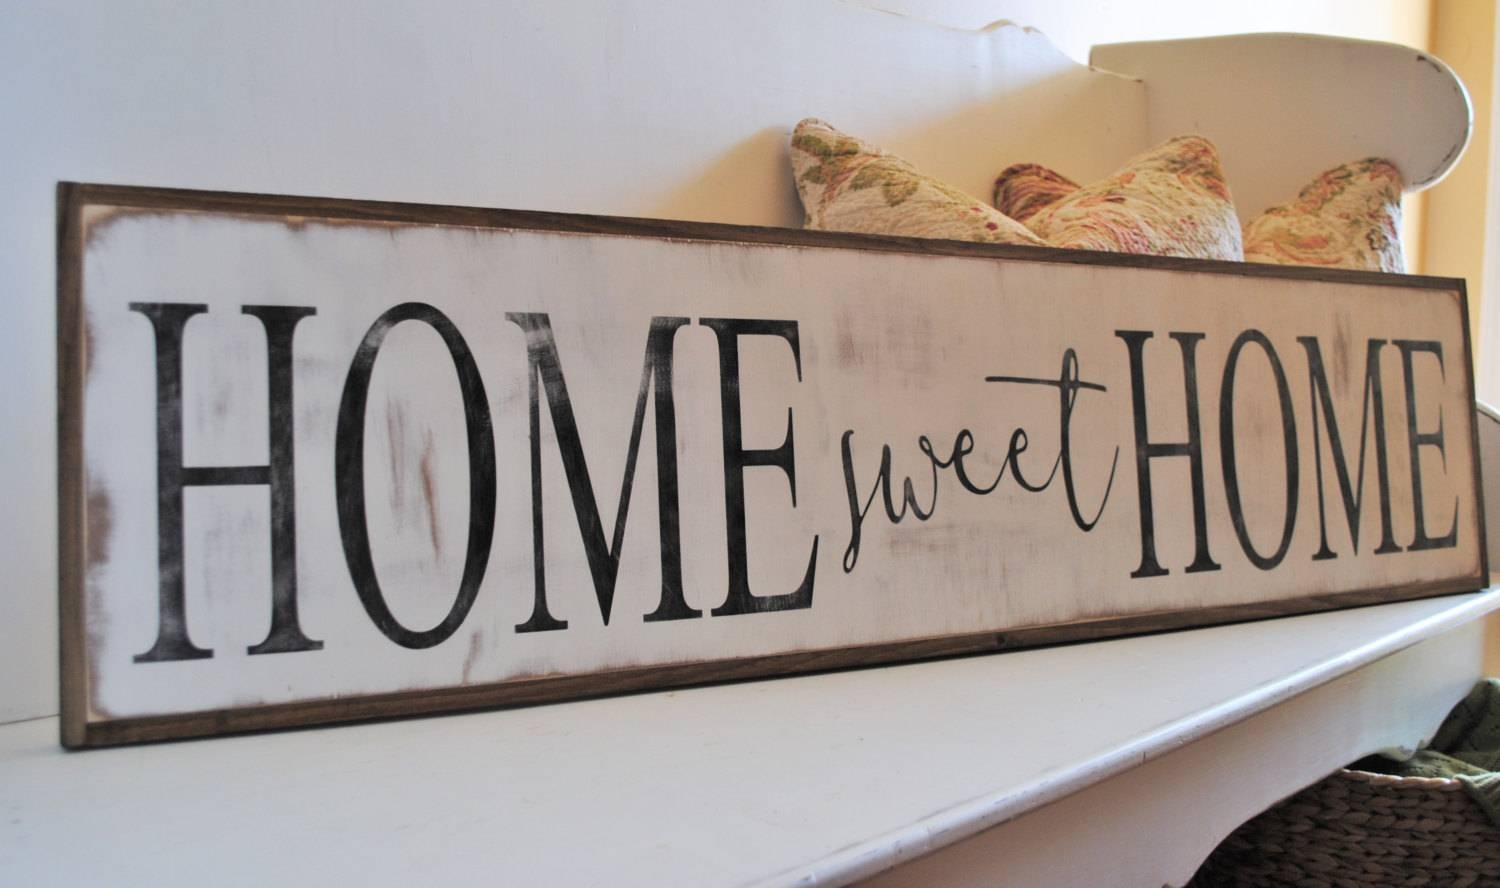 35 Home Sweet Home Wall Decor My Wall Of Life In Newest Home Sweet Home Metal Wall Art (View 16 of 20)